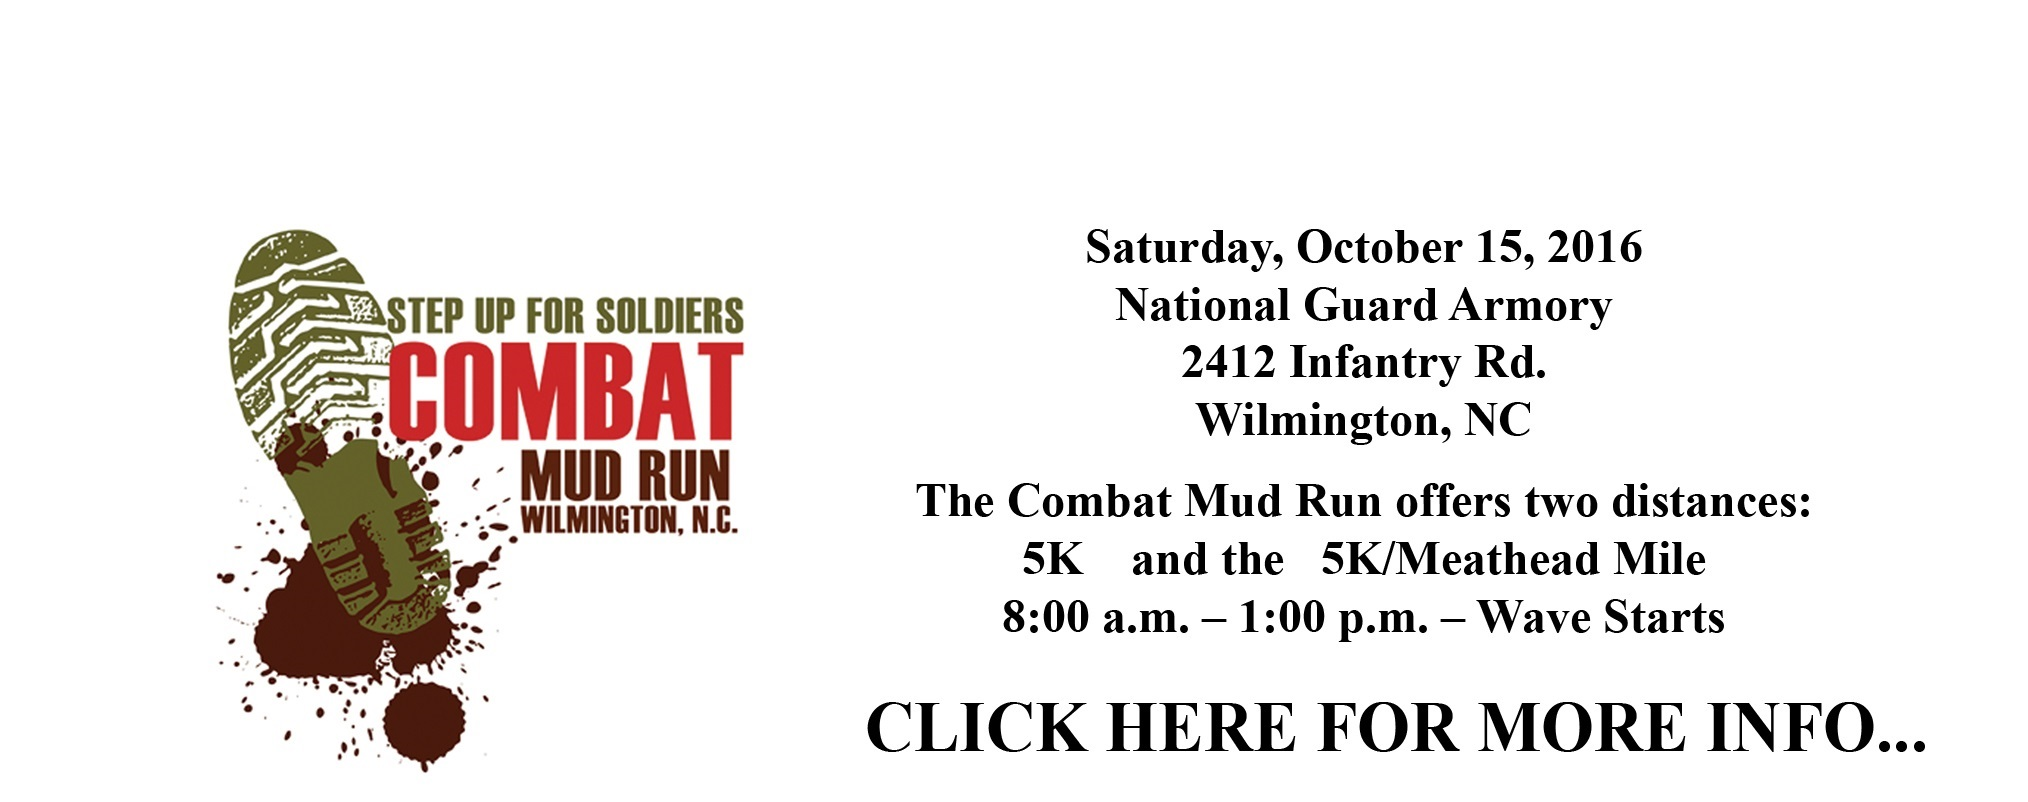 https://its-go-time.com/combat-mud-run/